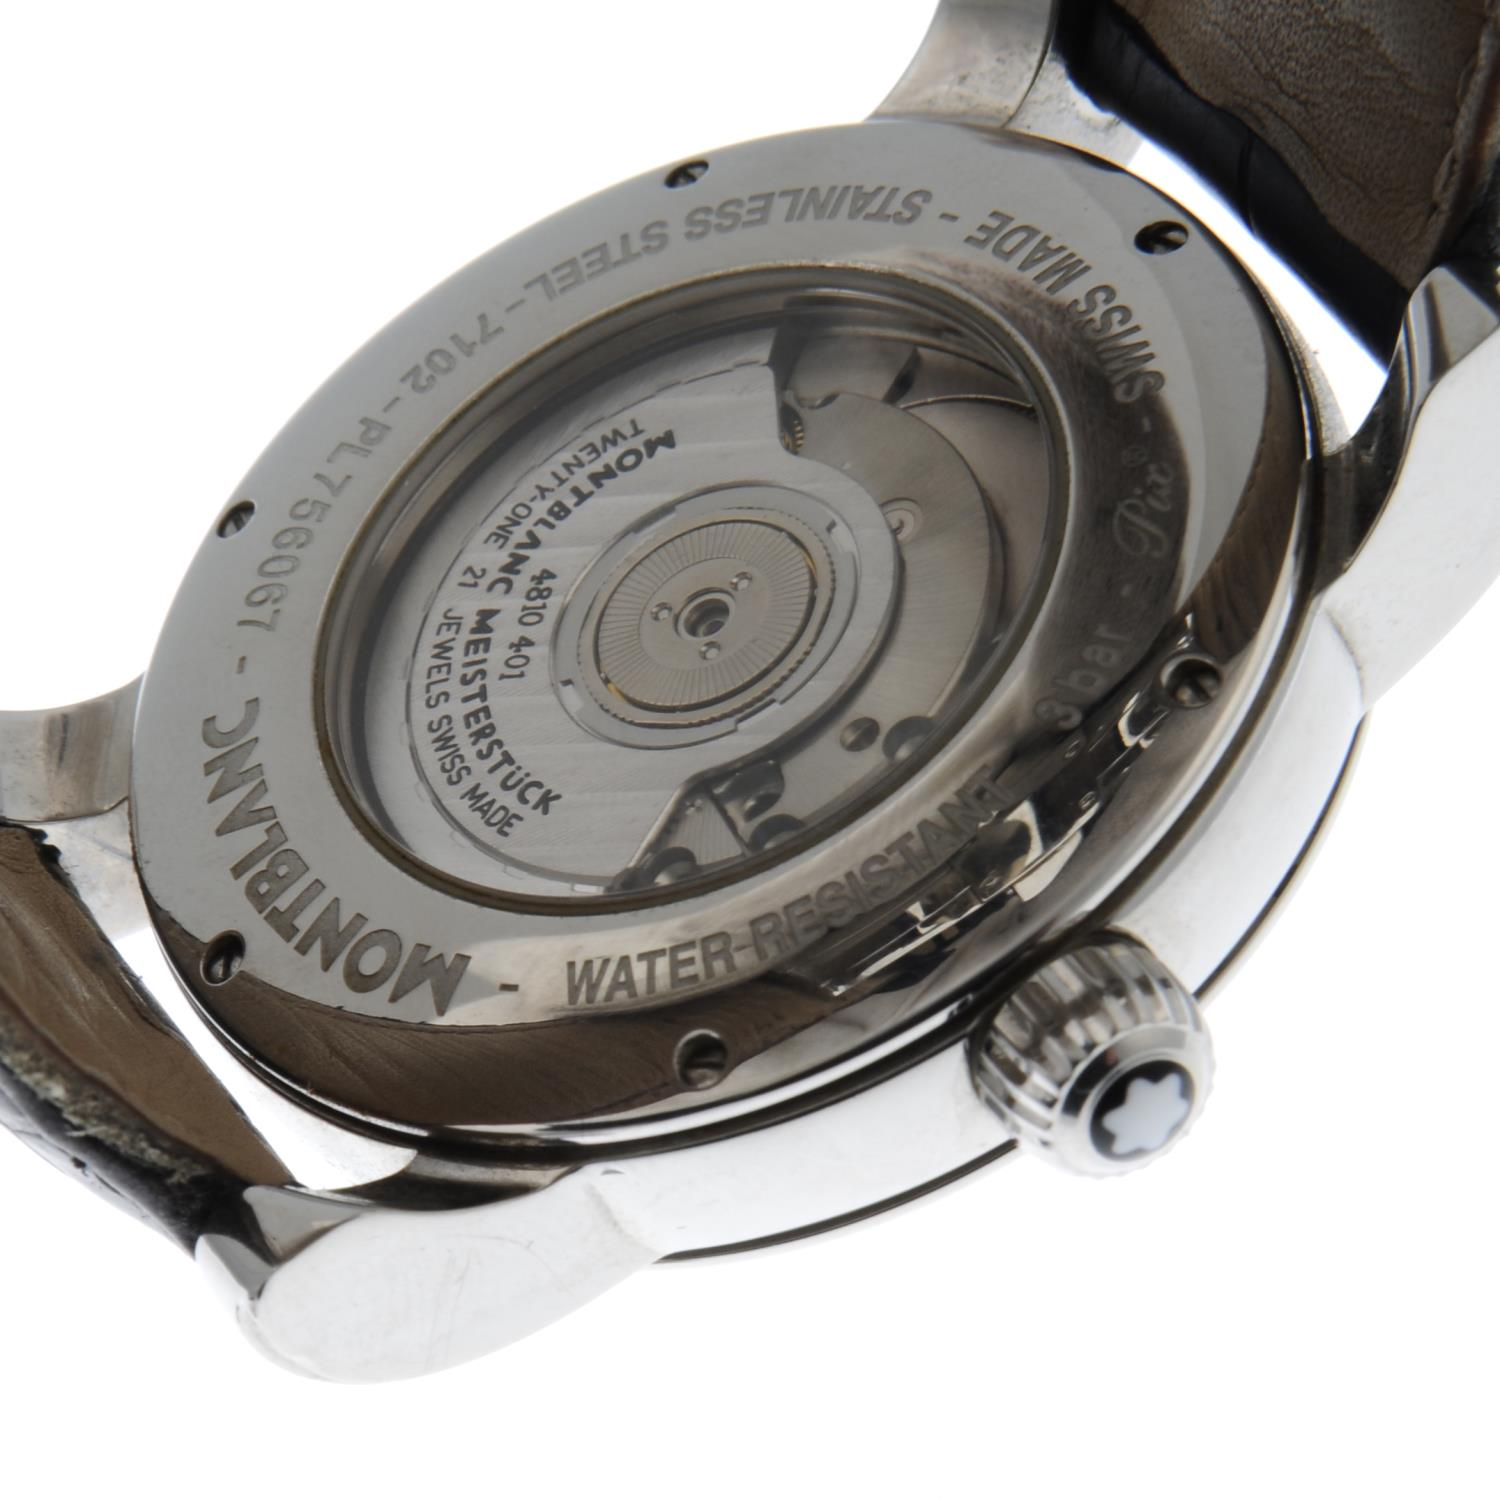 MONTBLANC - a Star wrist watch. - Image 2 of 5